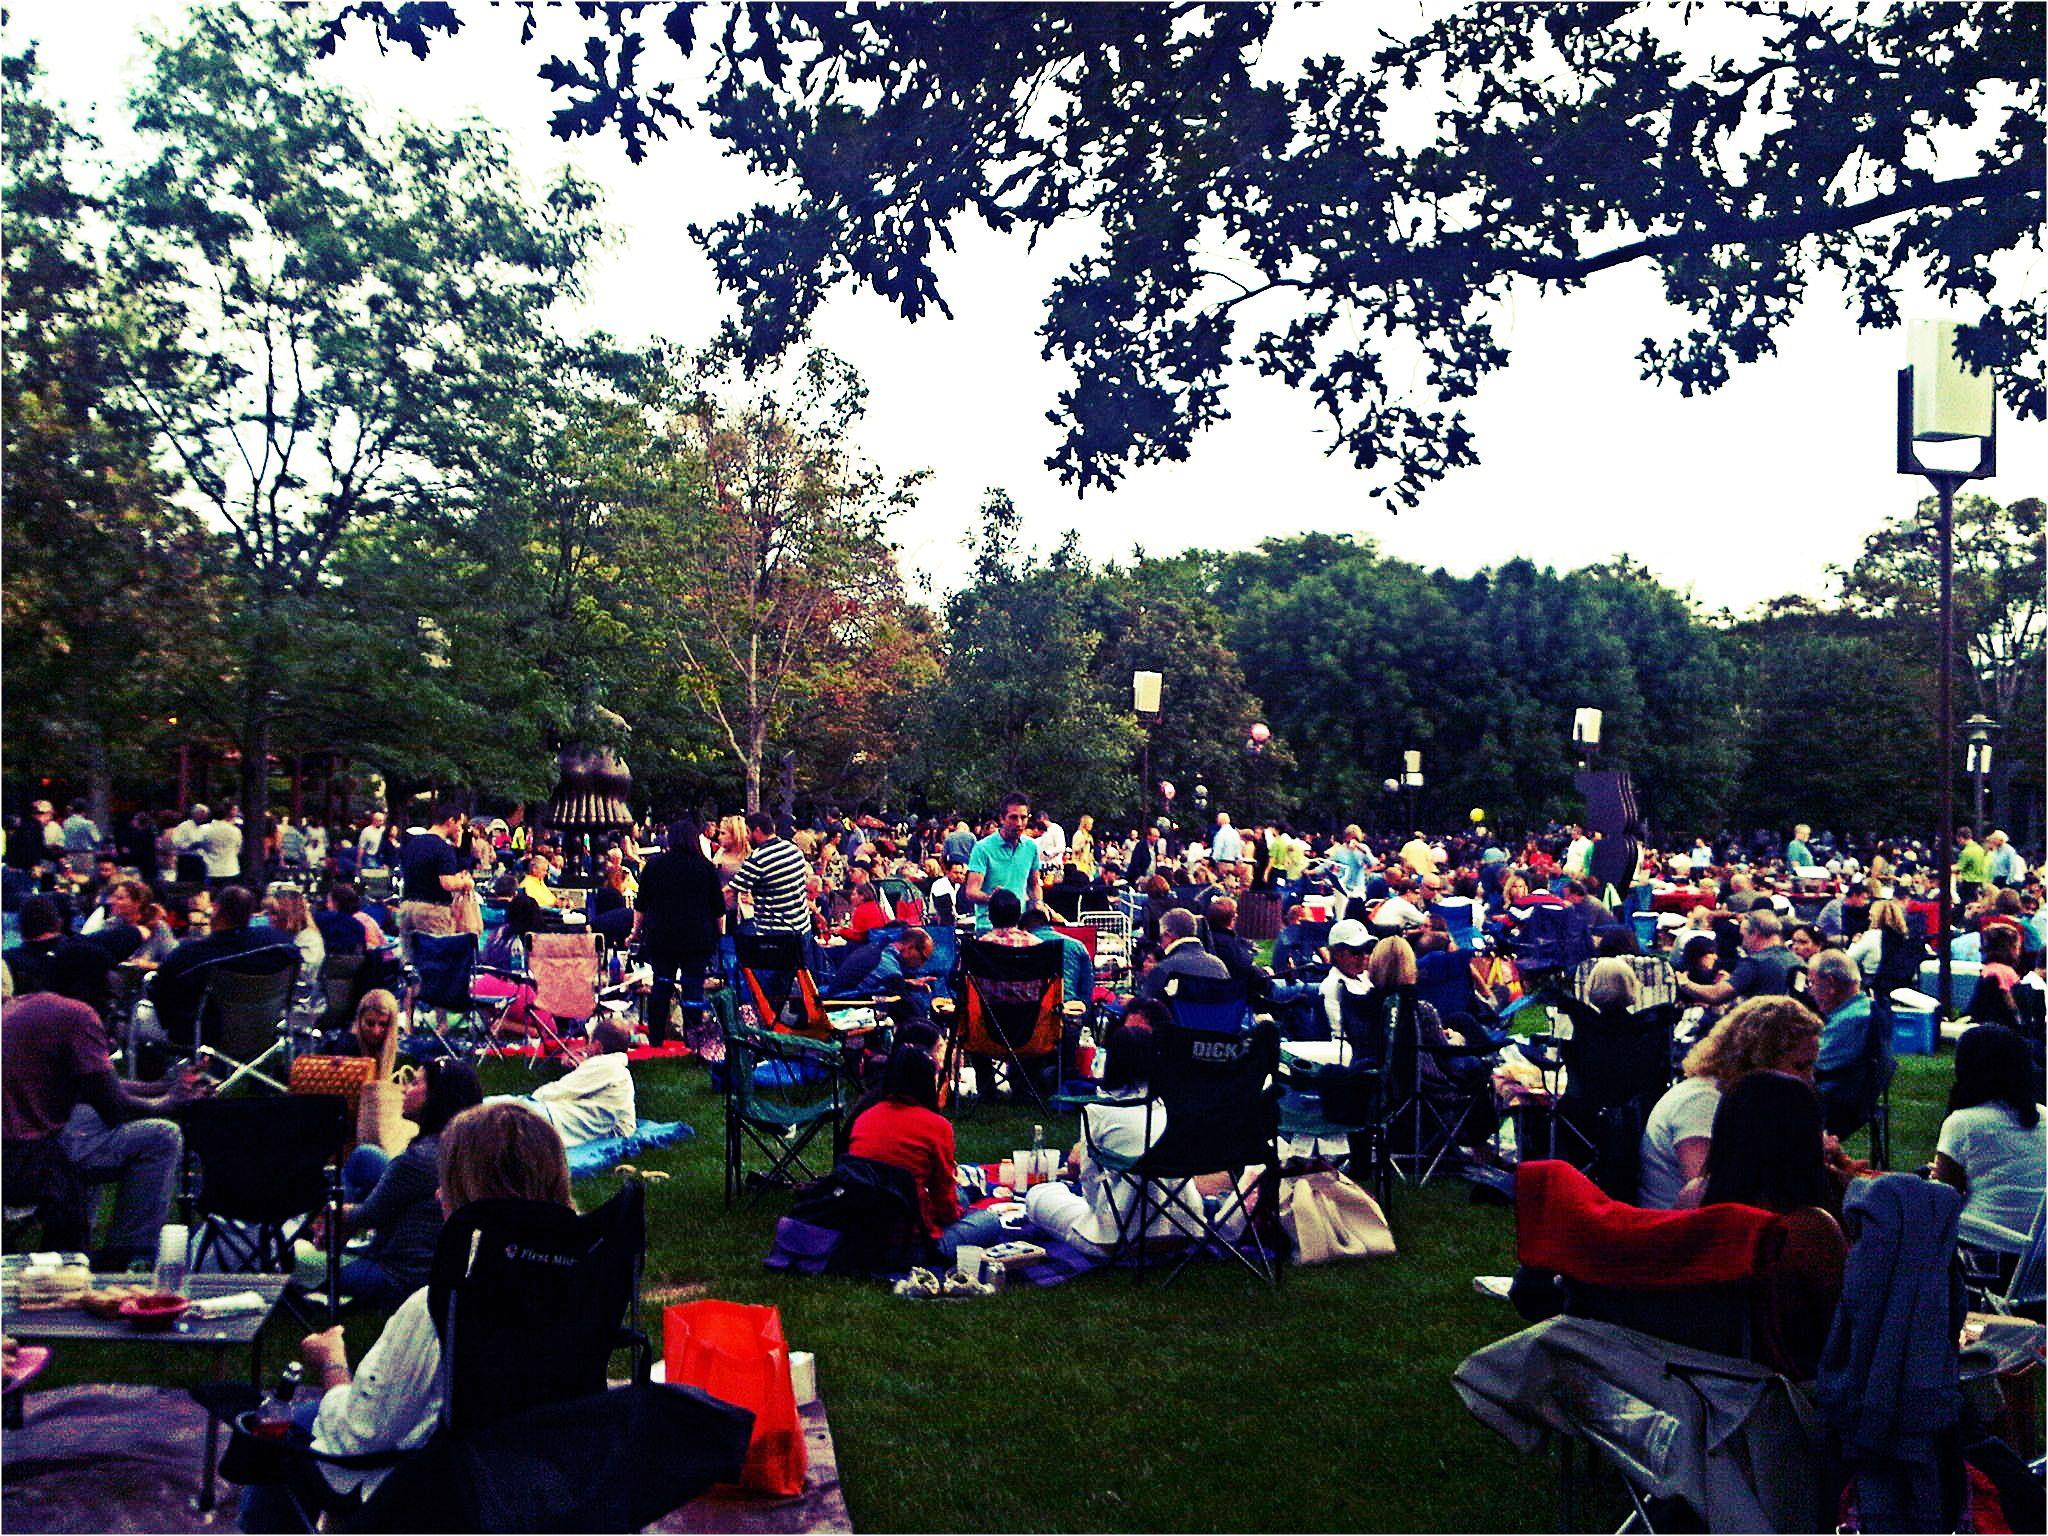 Nomad Luxuries photo capturing crowd at the Ravinia for a picnic.